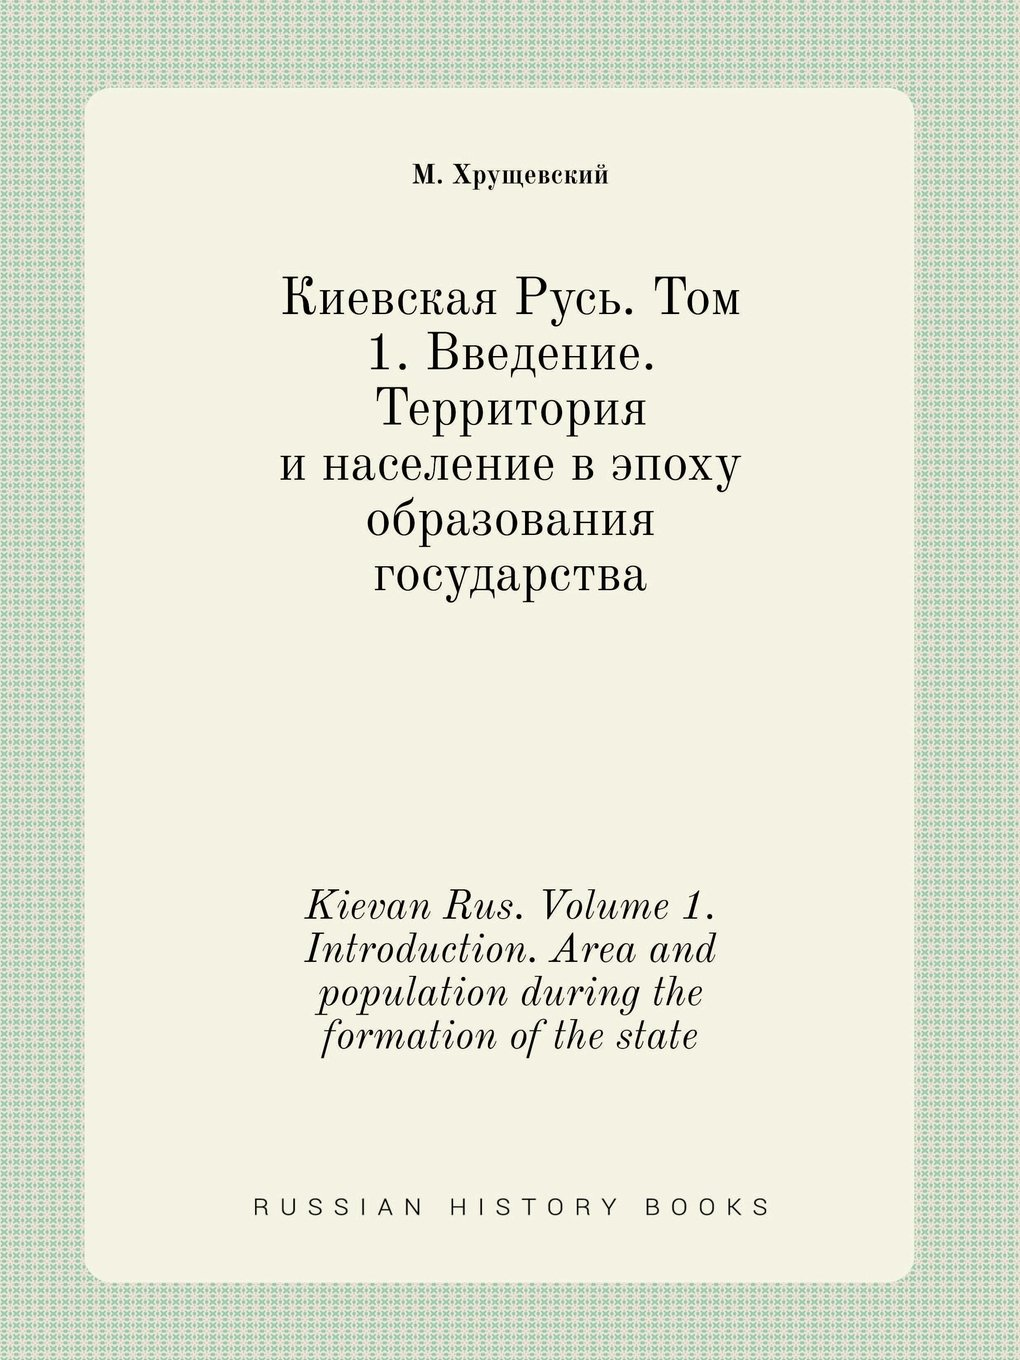 Kievan Rus. Volume 1. Introduction. Area and population during the formation of the state (Russian Edition) PDF